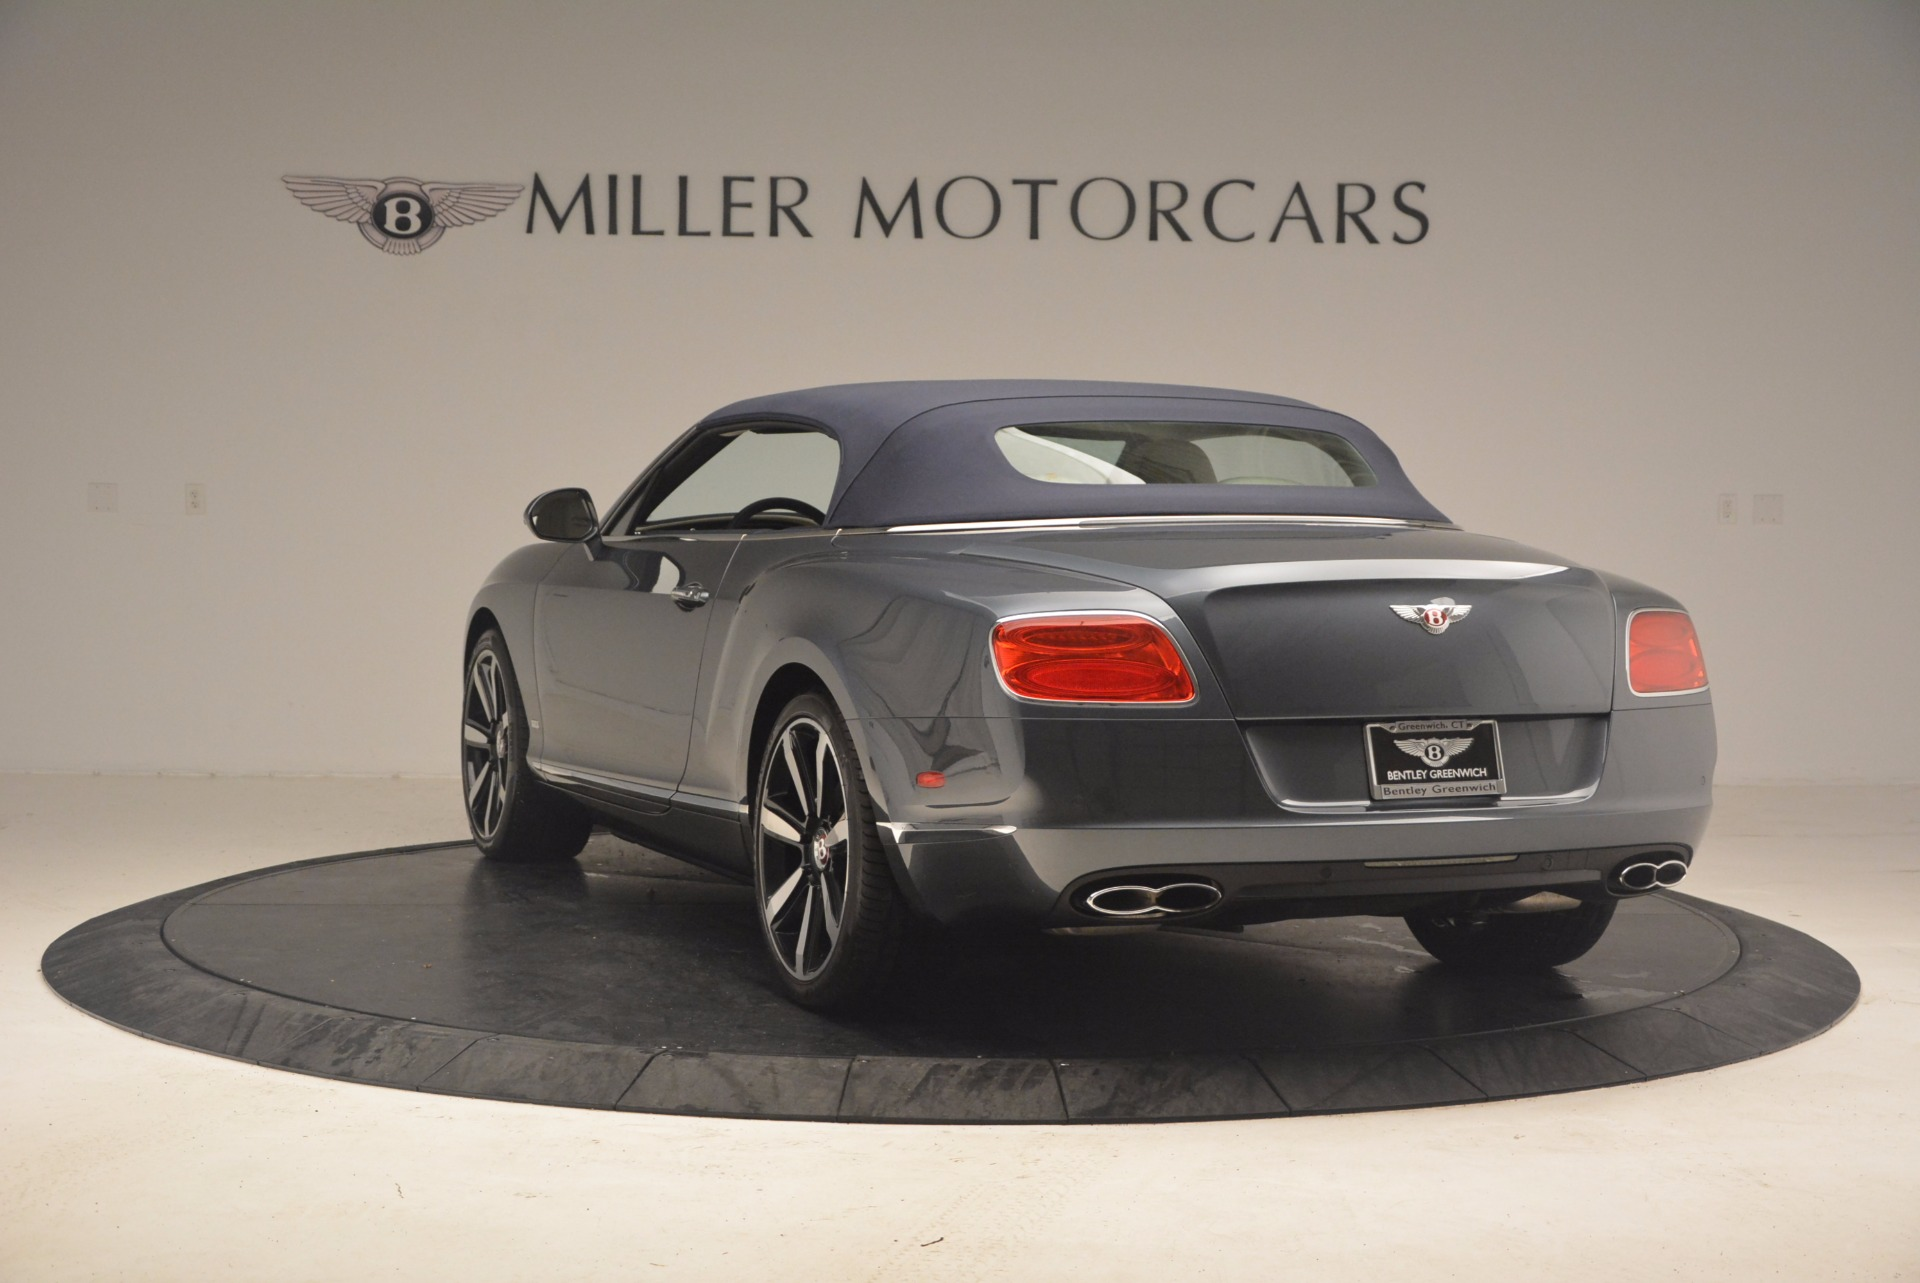 Used 2013 Bentley Continental GT V8 Le Mans Edition, 1 of 48 For Sale In Westport, CT 1288_p18